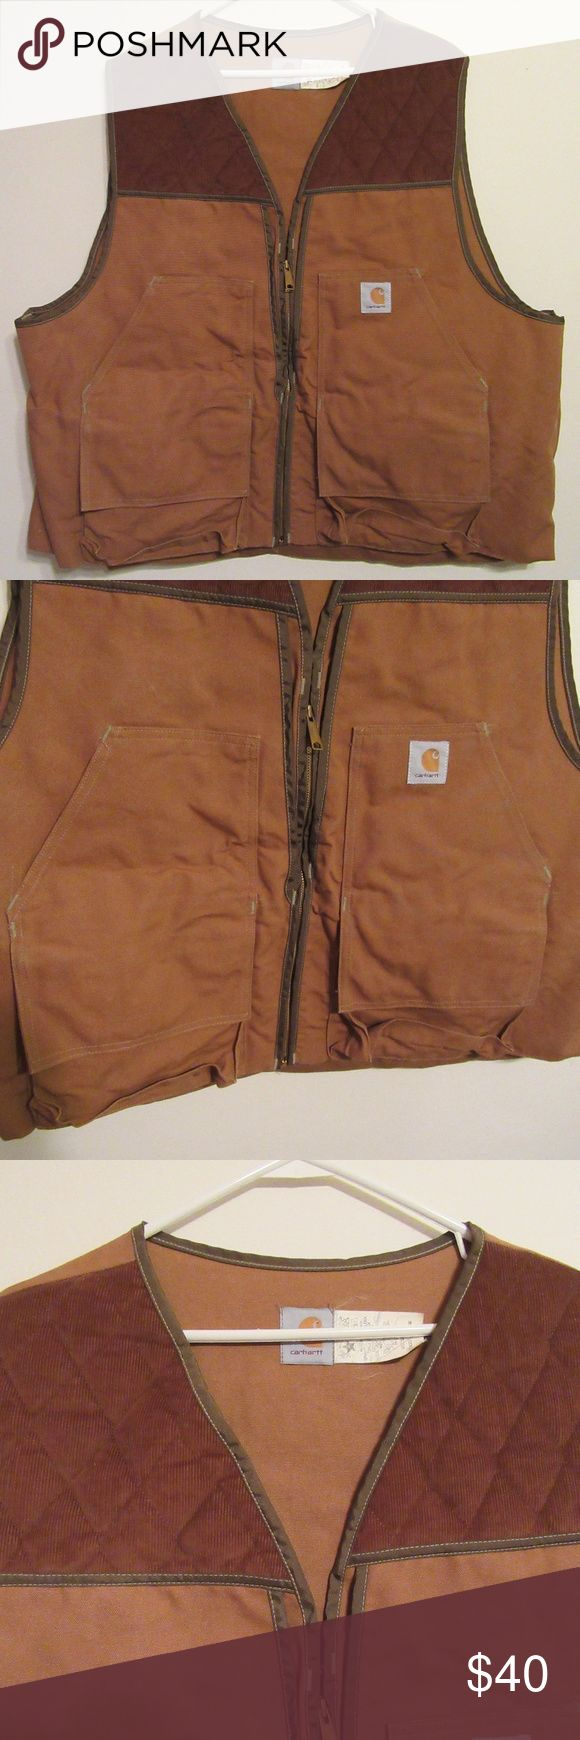 Carhartt Hunting Shooting Pheasant Bird Vest XXL Up for sale is a Carhartt Hunting / Shooting bird / pheasant vest.  Vest is size XXXL.  Zipper front.  Brown / tan in color.  Light wear from use.  In great used condition.  Padded shoulder, two front pockets and zipper back pocket (see pics).  Comes from a smoke free home. Carhartt Jackets & Coats Vests